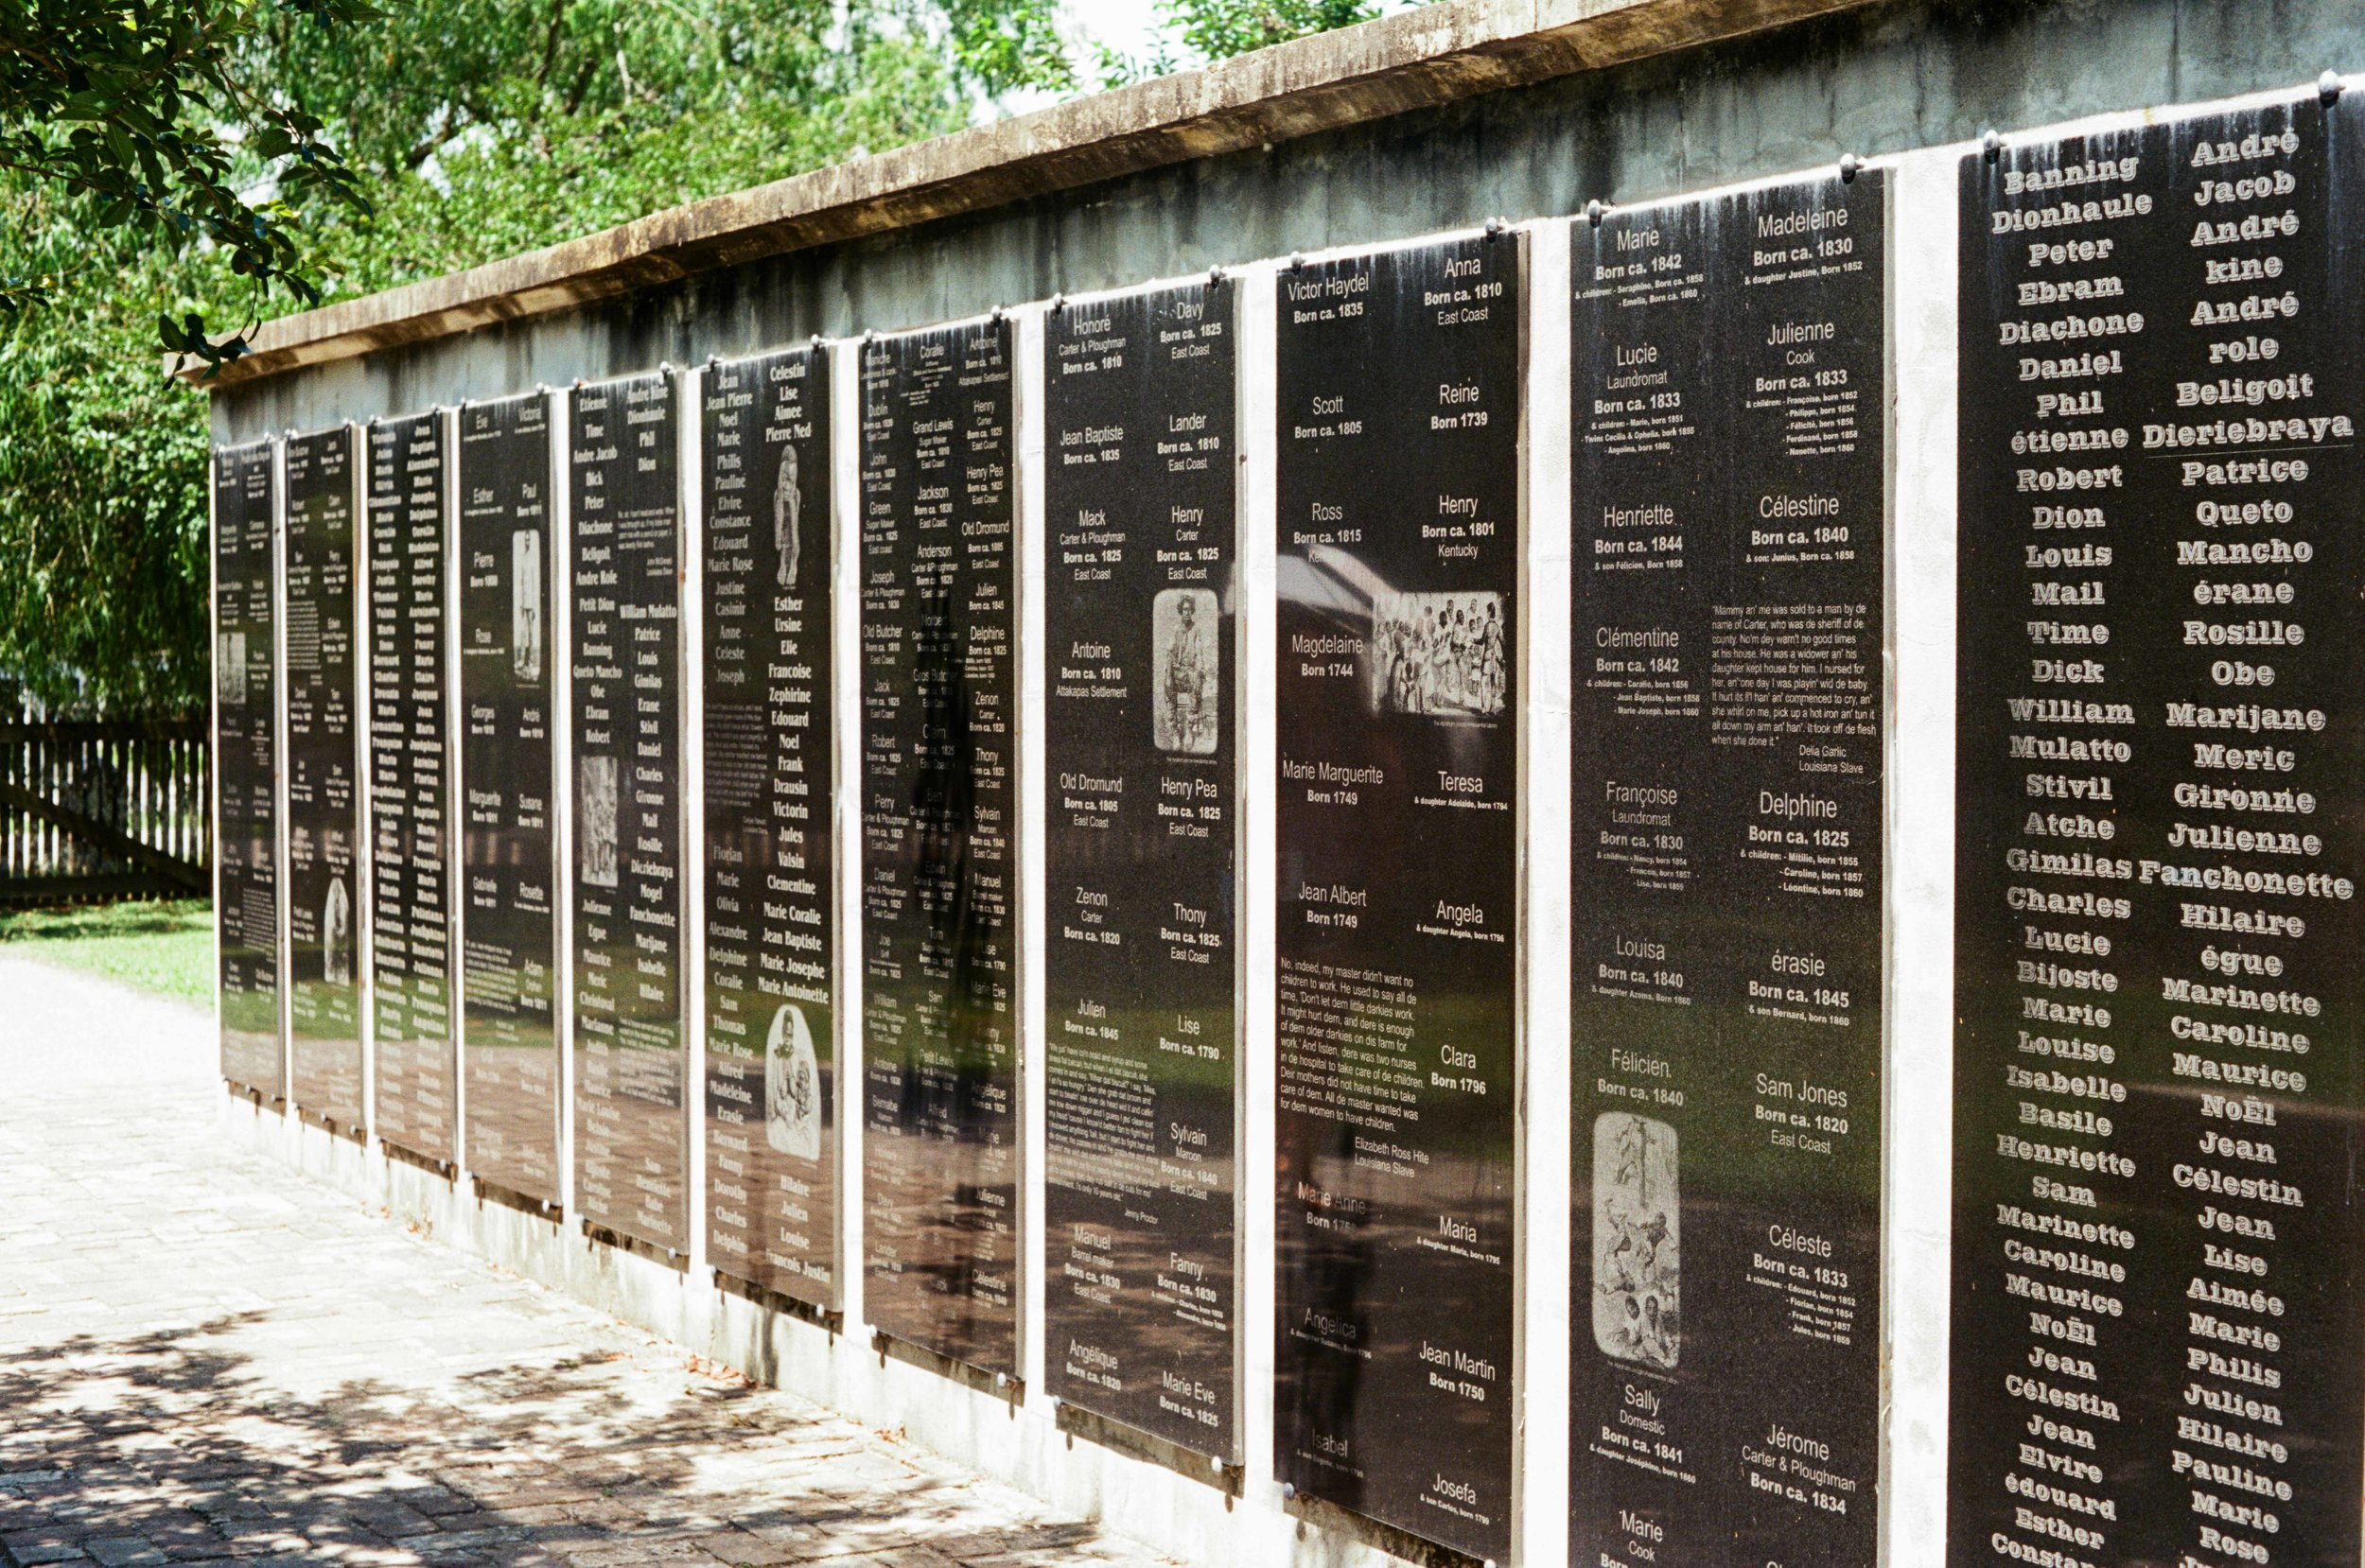 A condensed history of slavery relating to the Whitney Plantation